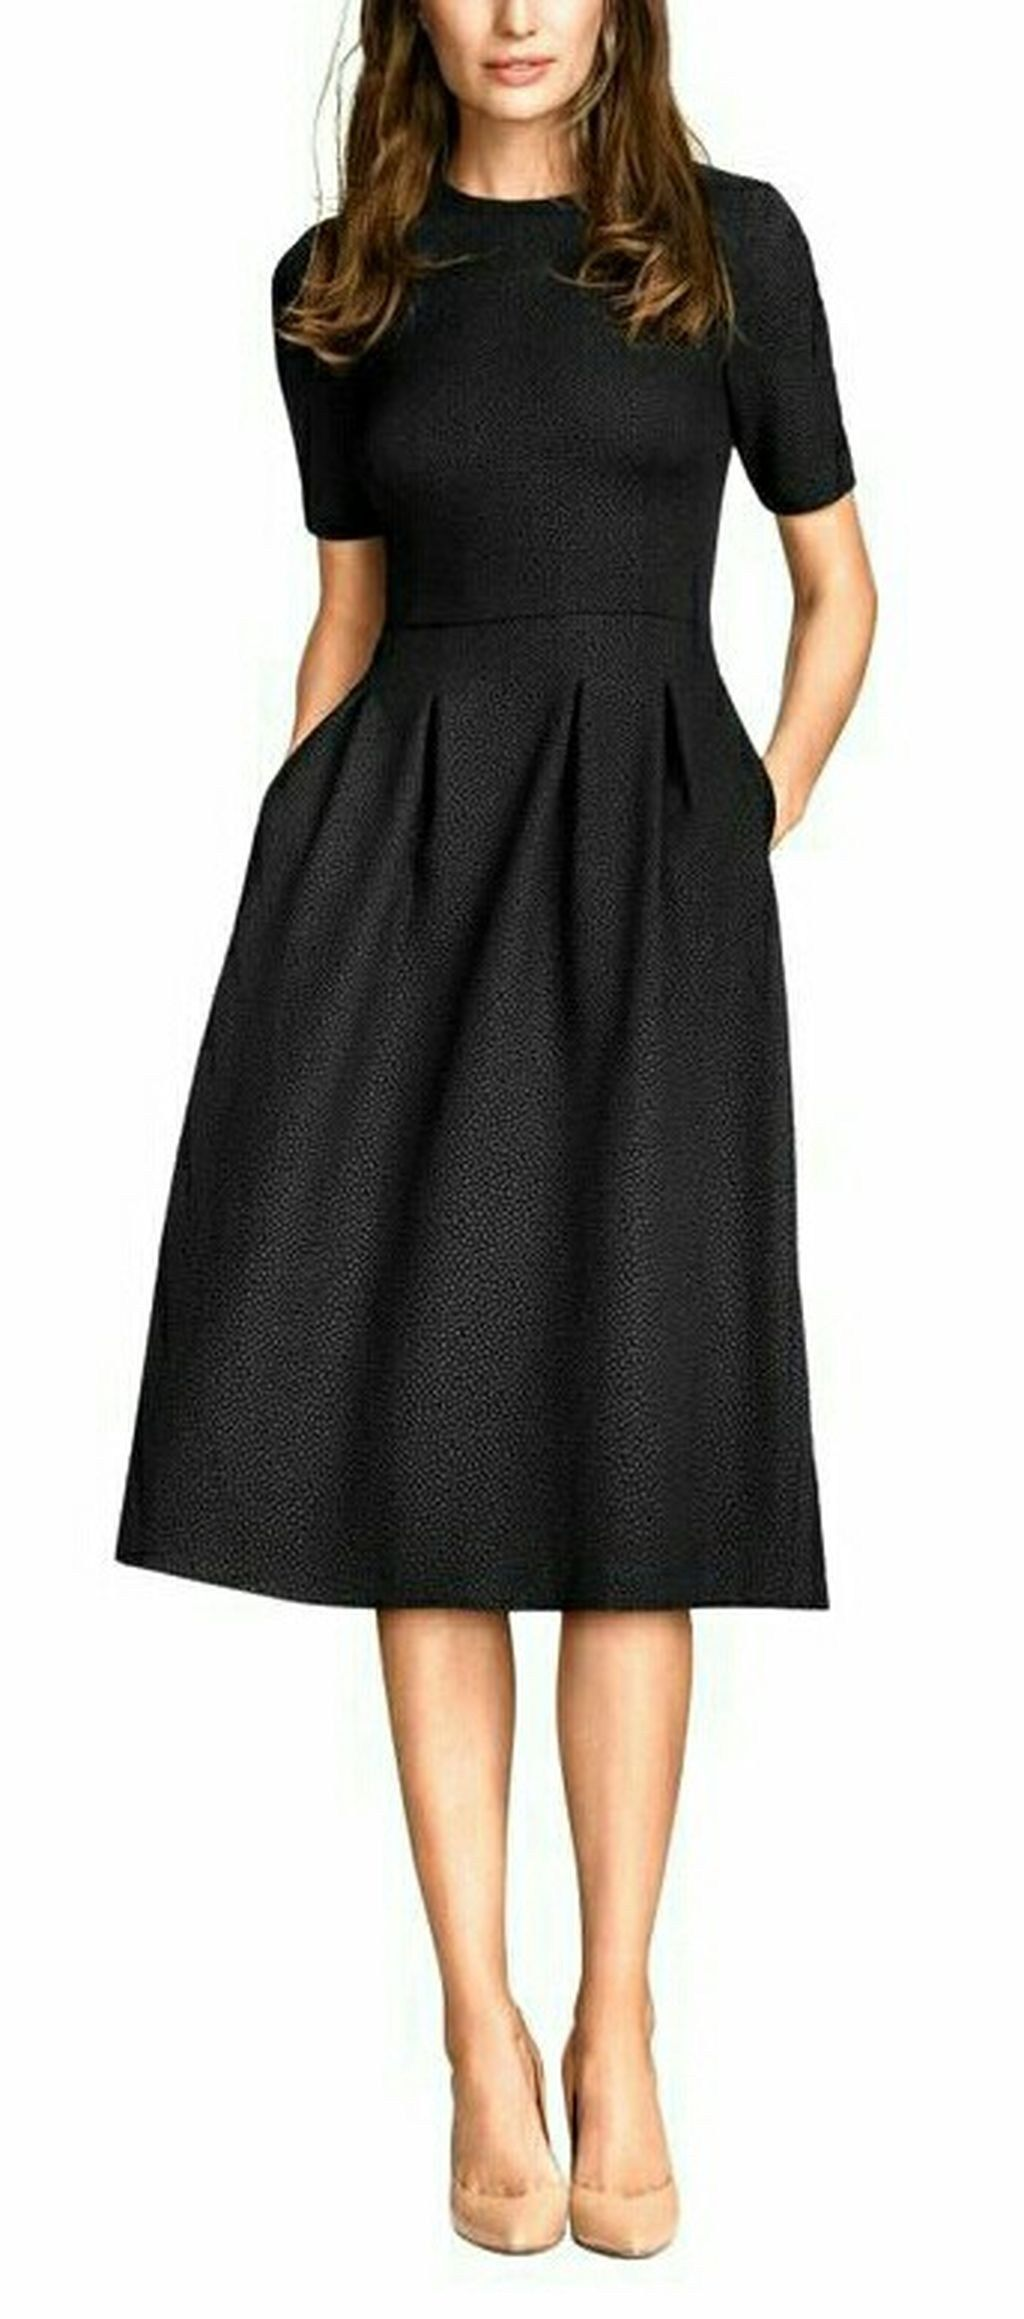 bf711e67a Simple but gorgeous professional work dresses ideas 44